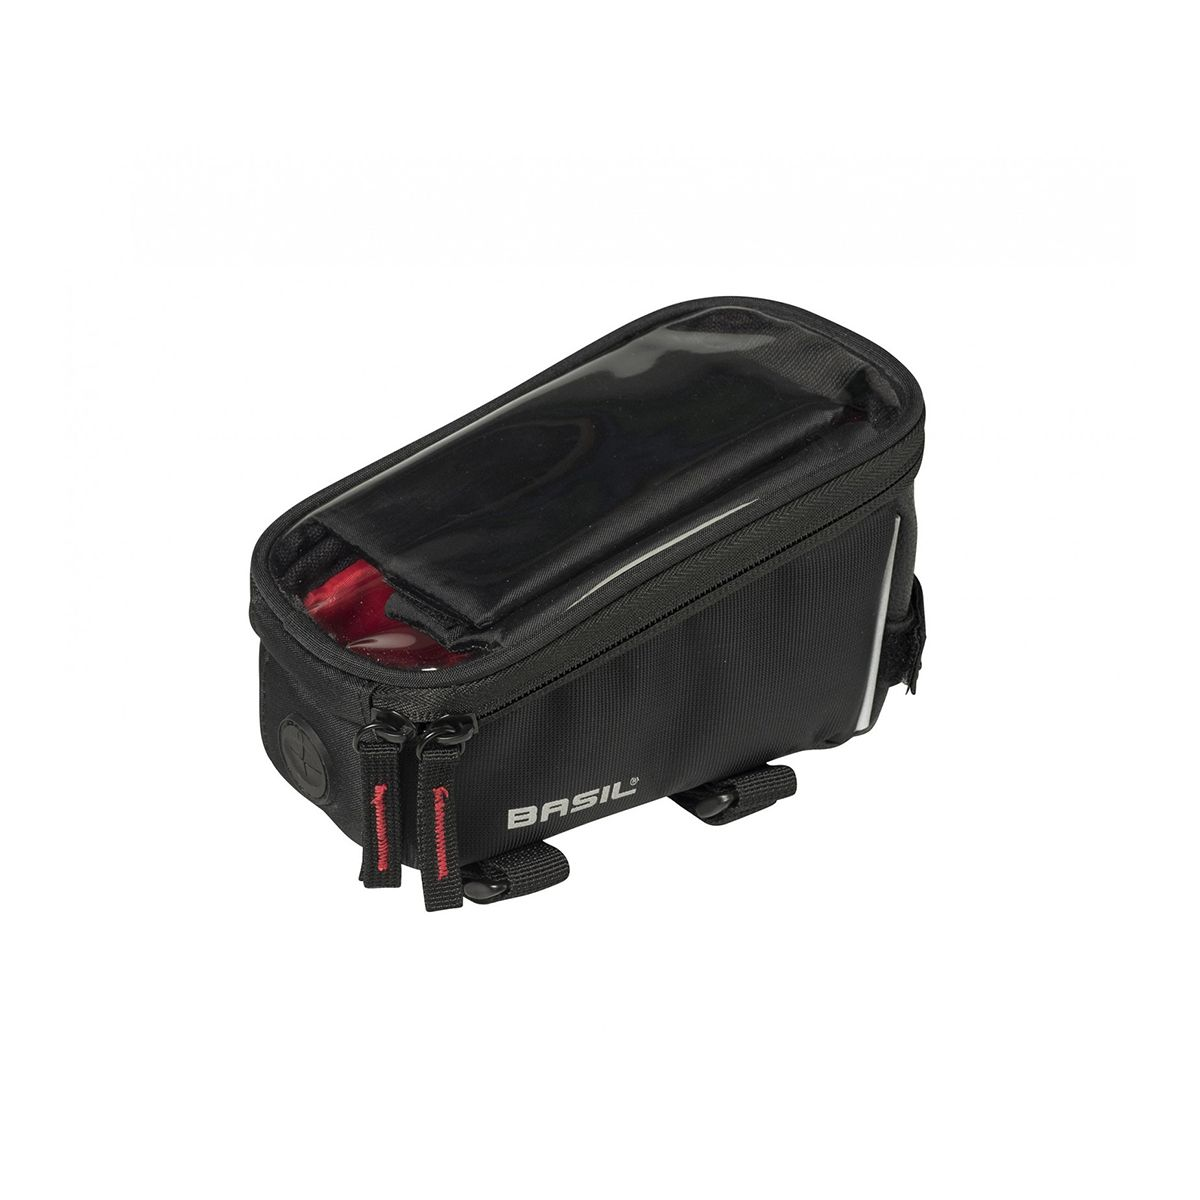 SPORT DESIGN FRAME BAG